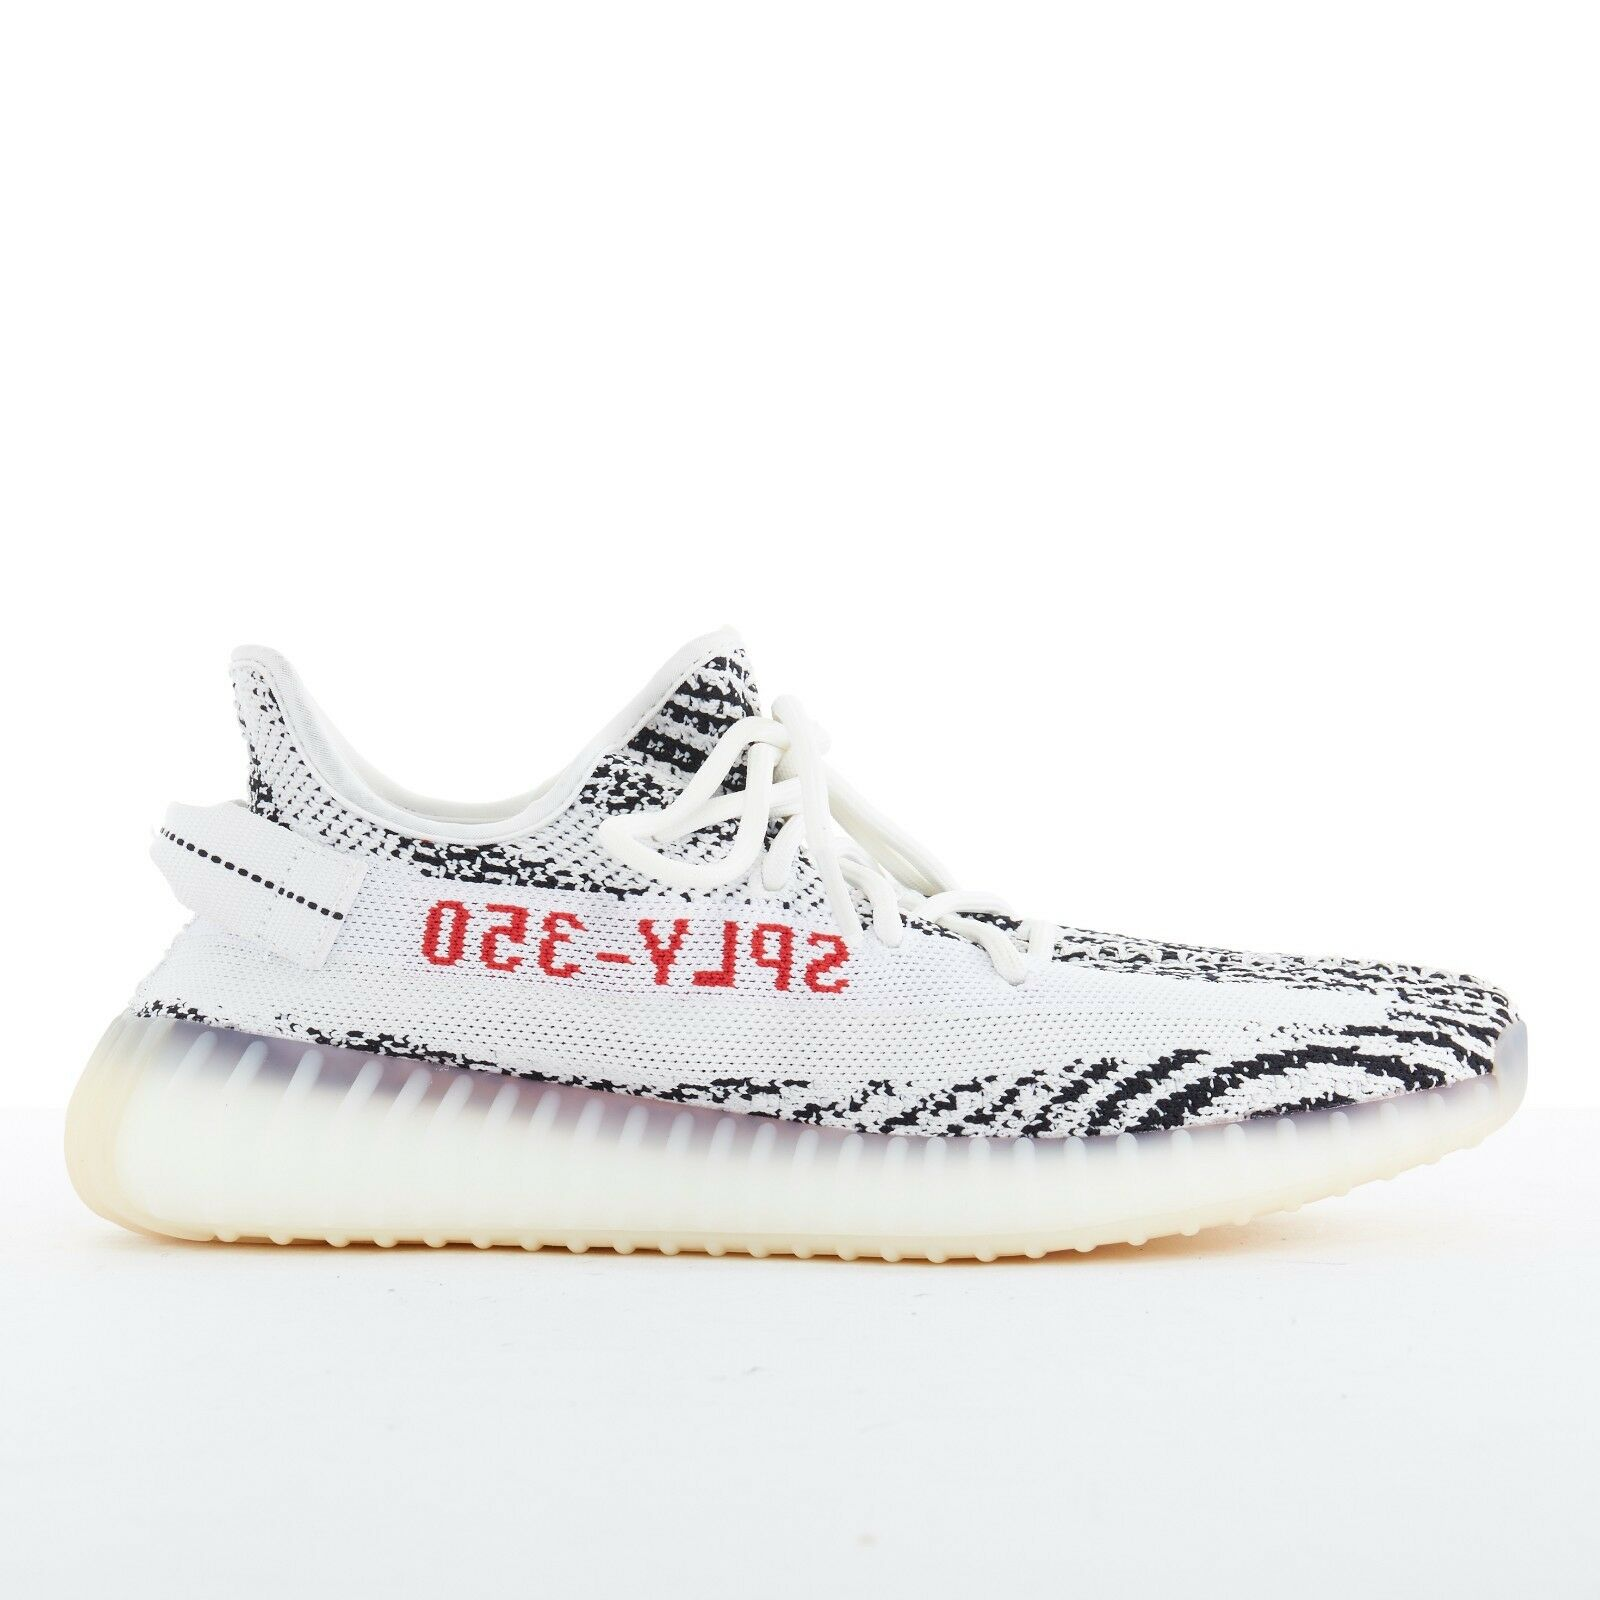 YEEZY BOOST 350 V2 ADIDAS  black white zebra knitted chunky sole sneakers US9